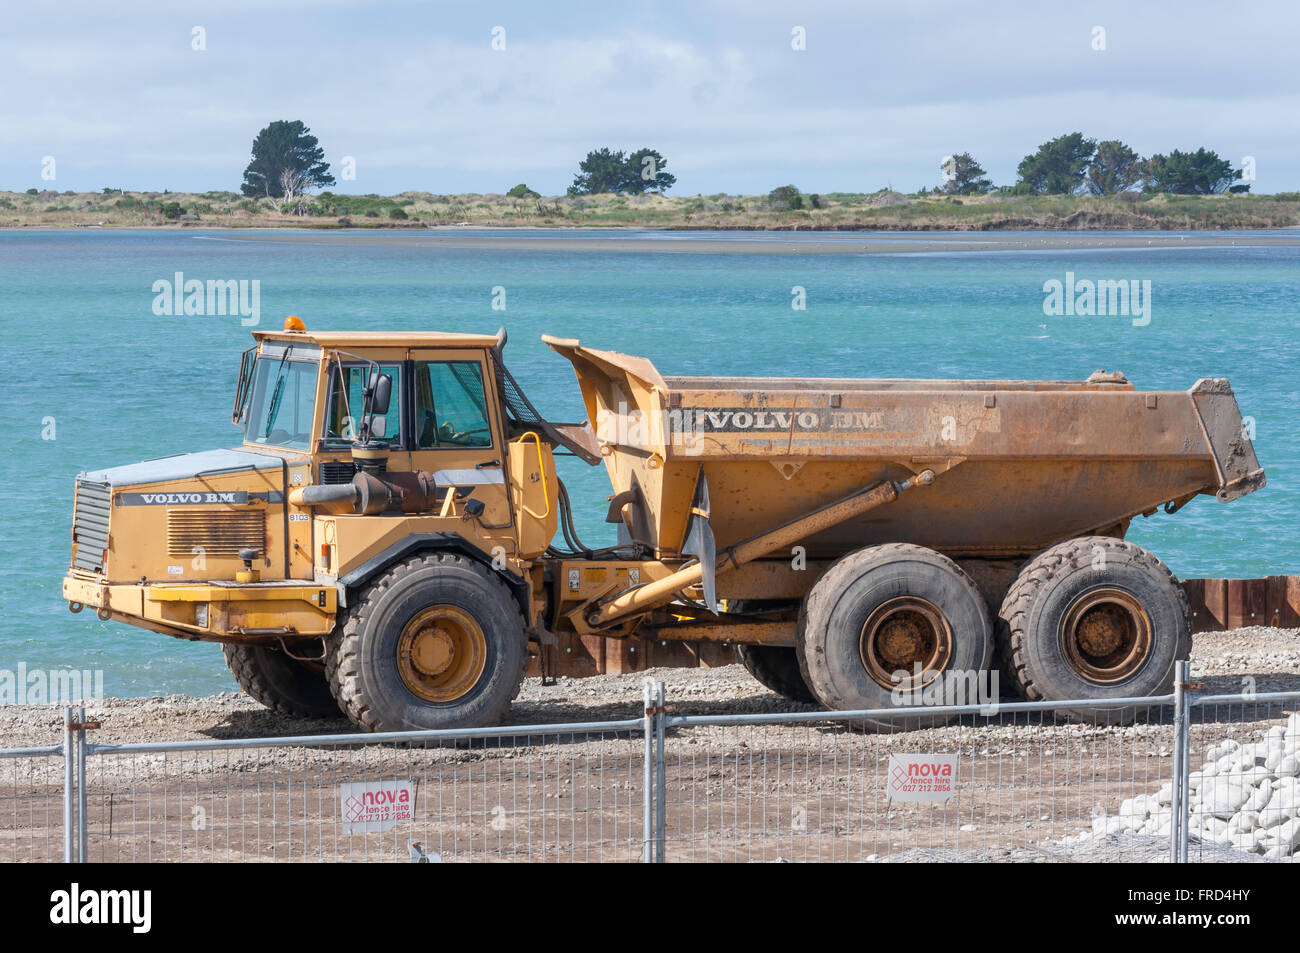 Volvo BM Articulated Dump Truck on construction site, Redcliffs Stock Photo, Royalty Free Image ...